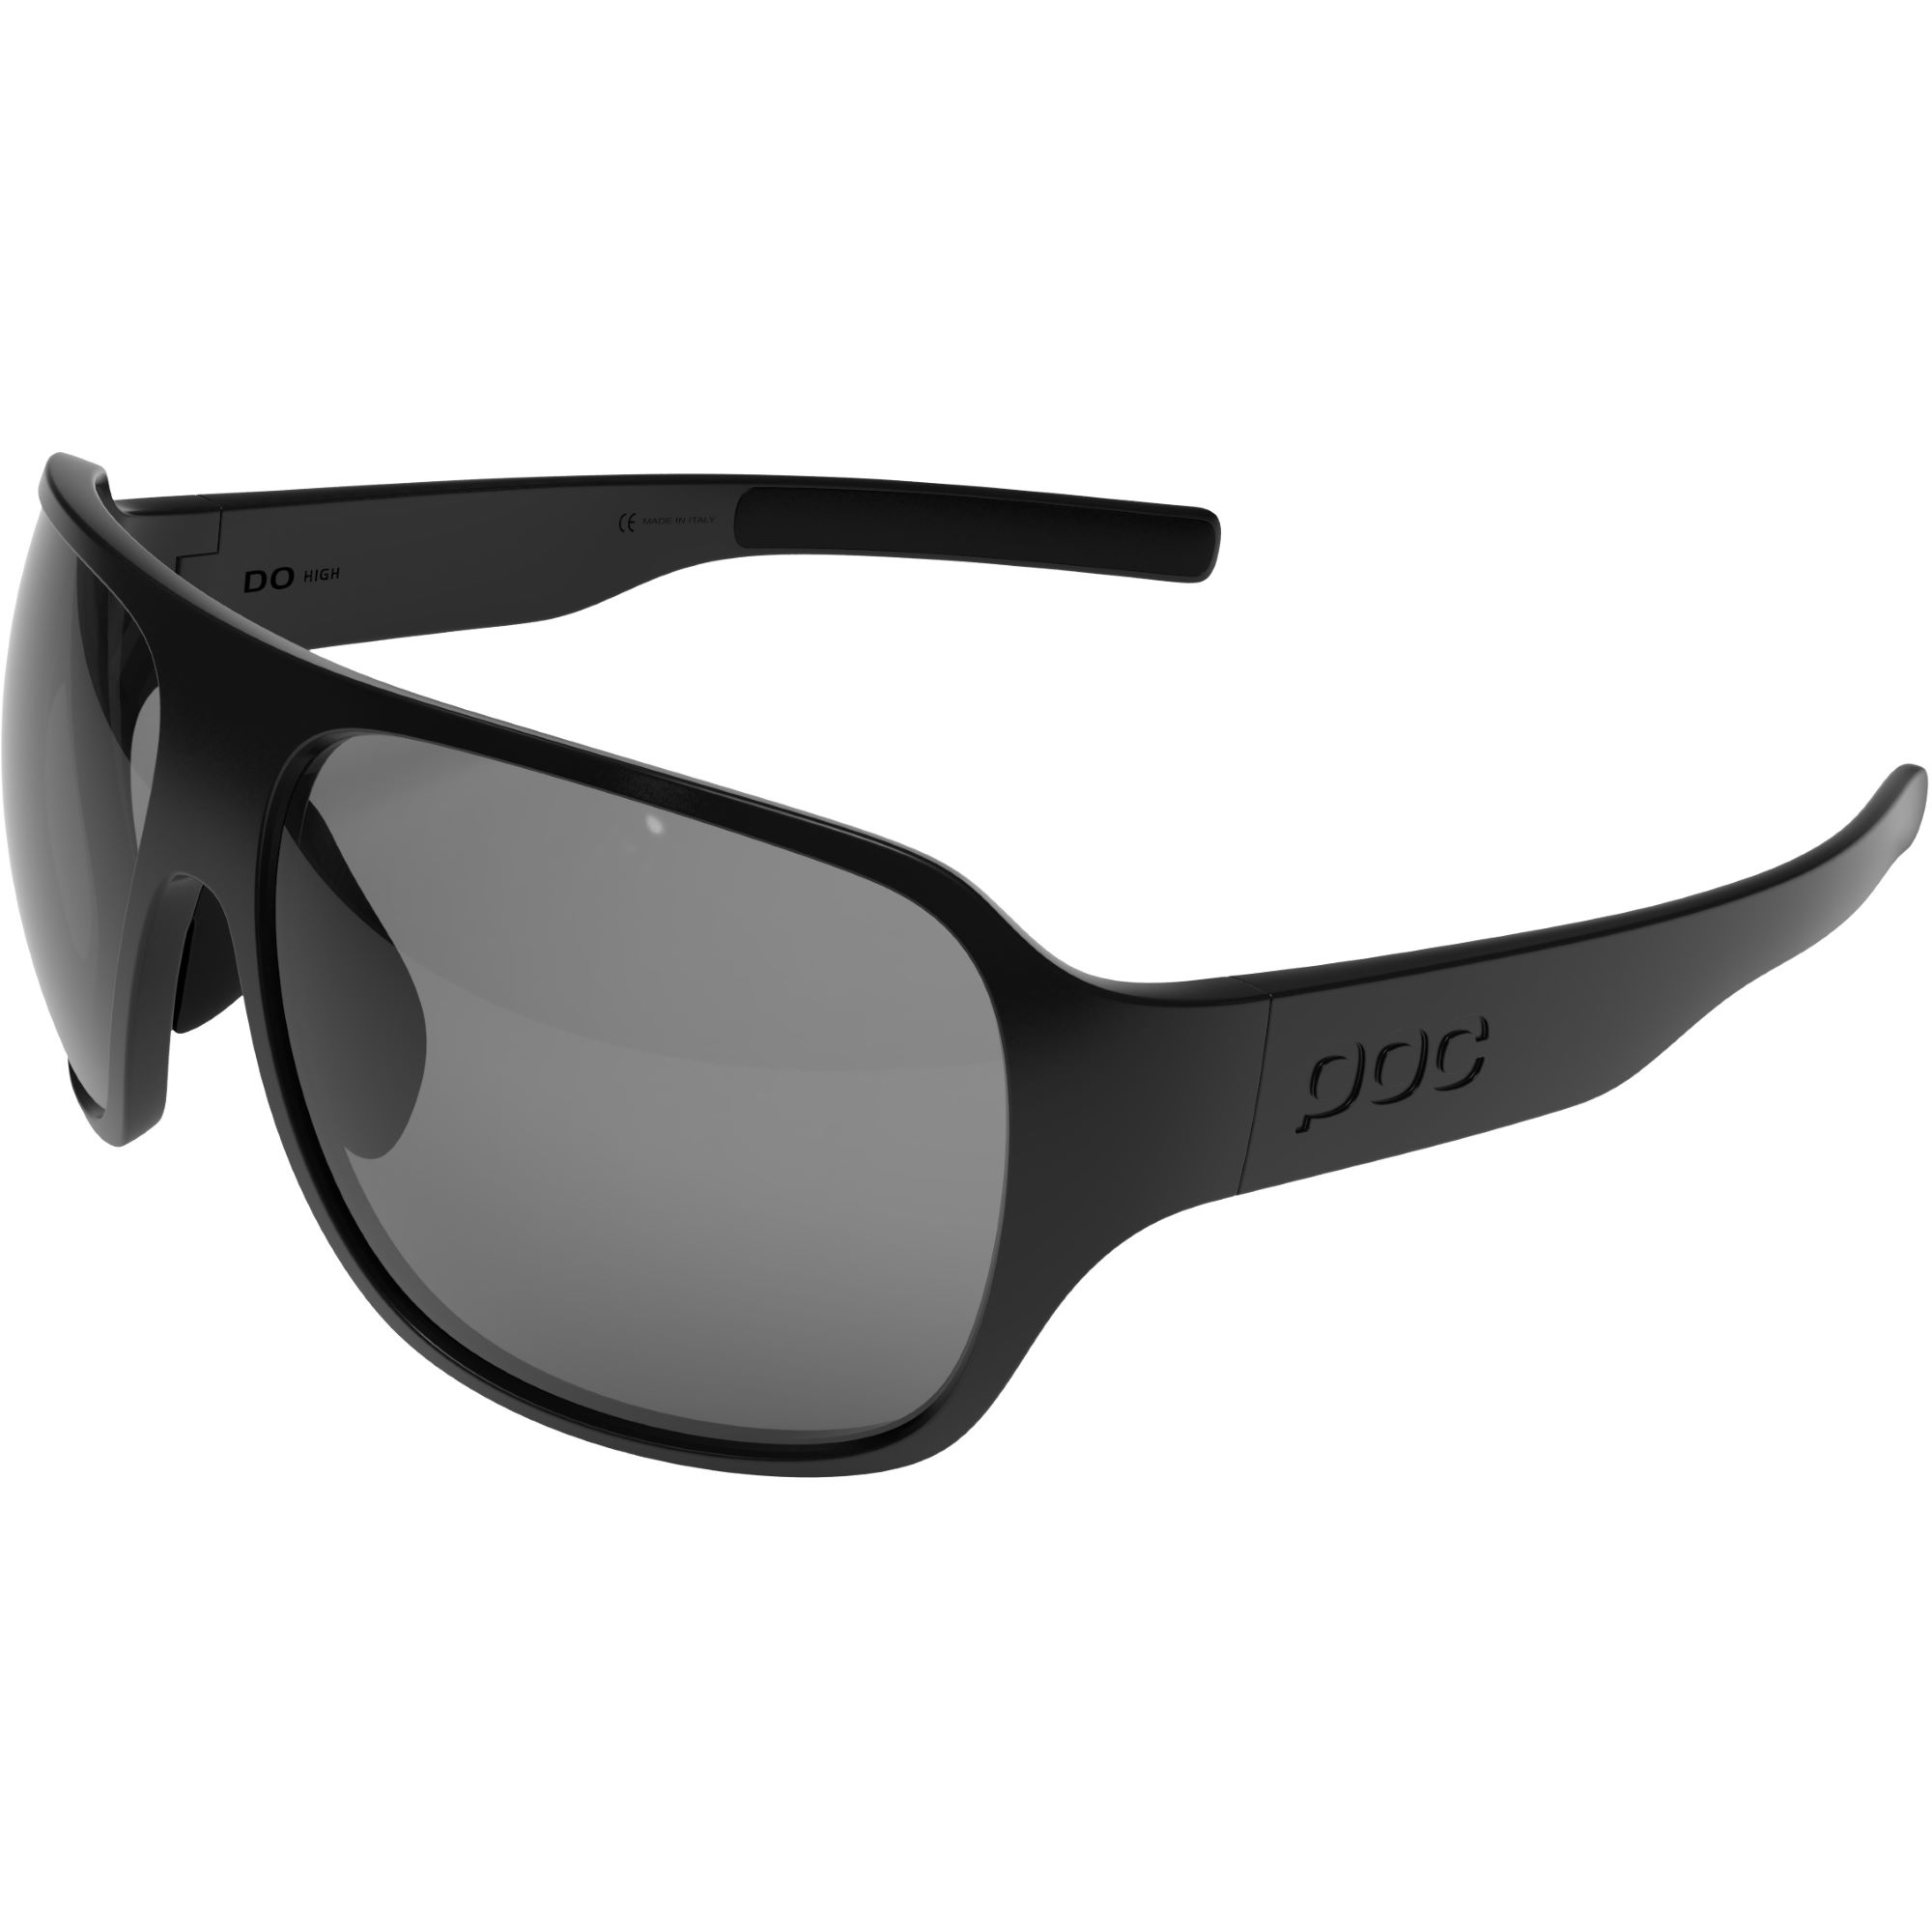 Best polarized sunglasses 2014 for Best cheap polarized sunglasses for fishing